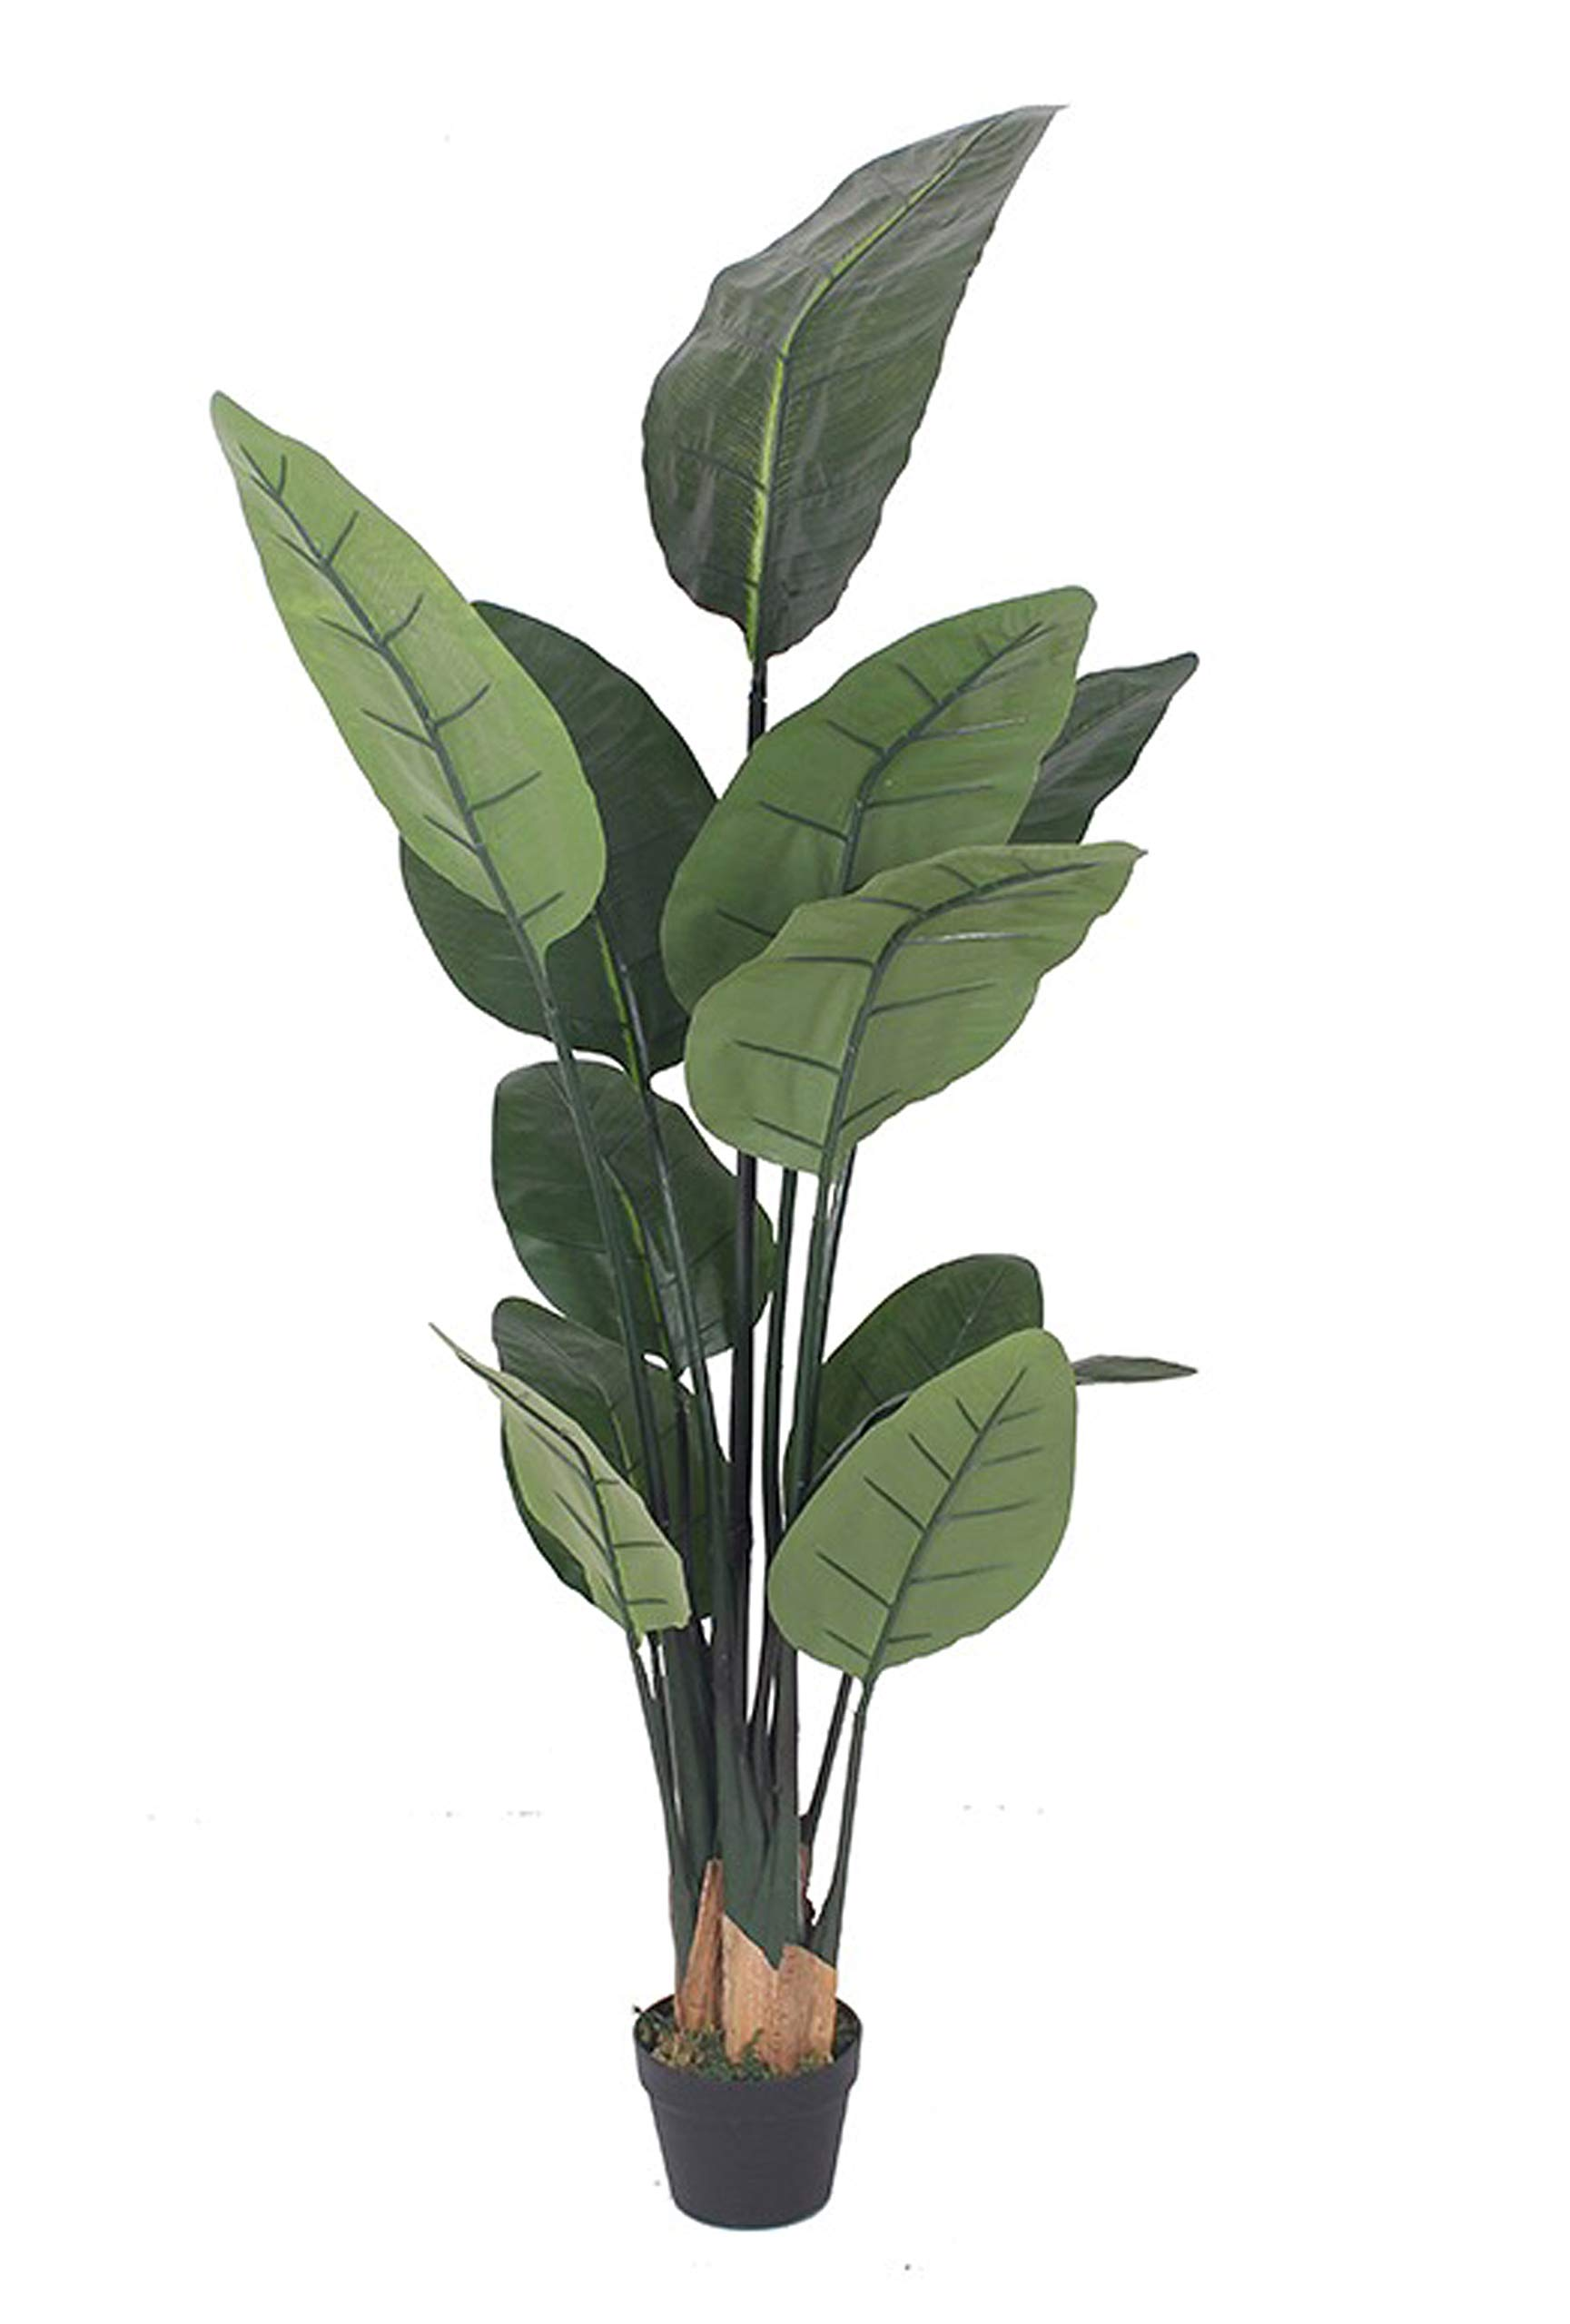 AMERIQUE 6 Feet Bird of Paradise Artificial Tree Silk Plant with Giant Leaves, UV Protection, Nursery Plastic Pot, Feel Real Technology, Super Quality, Green by AMERIQUE